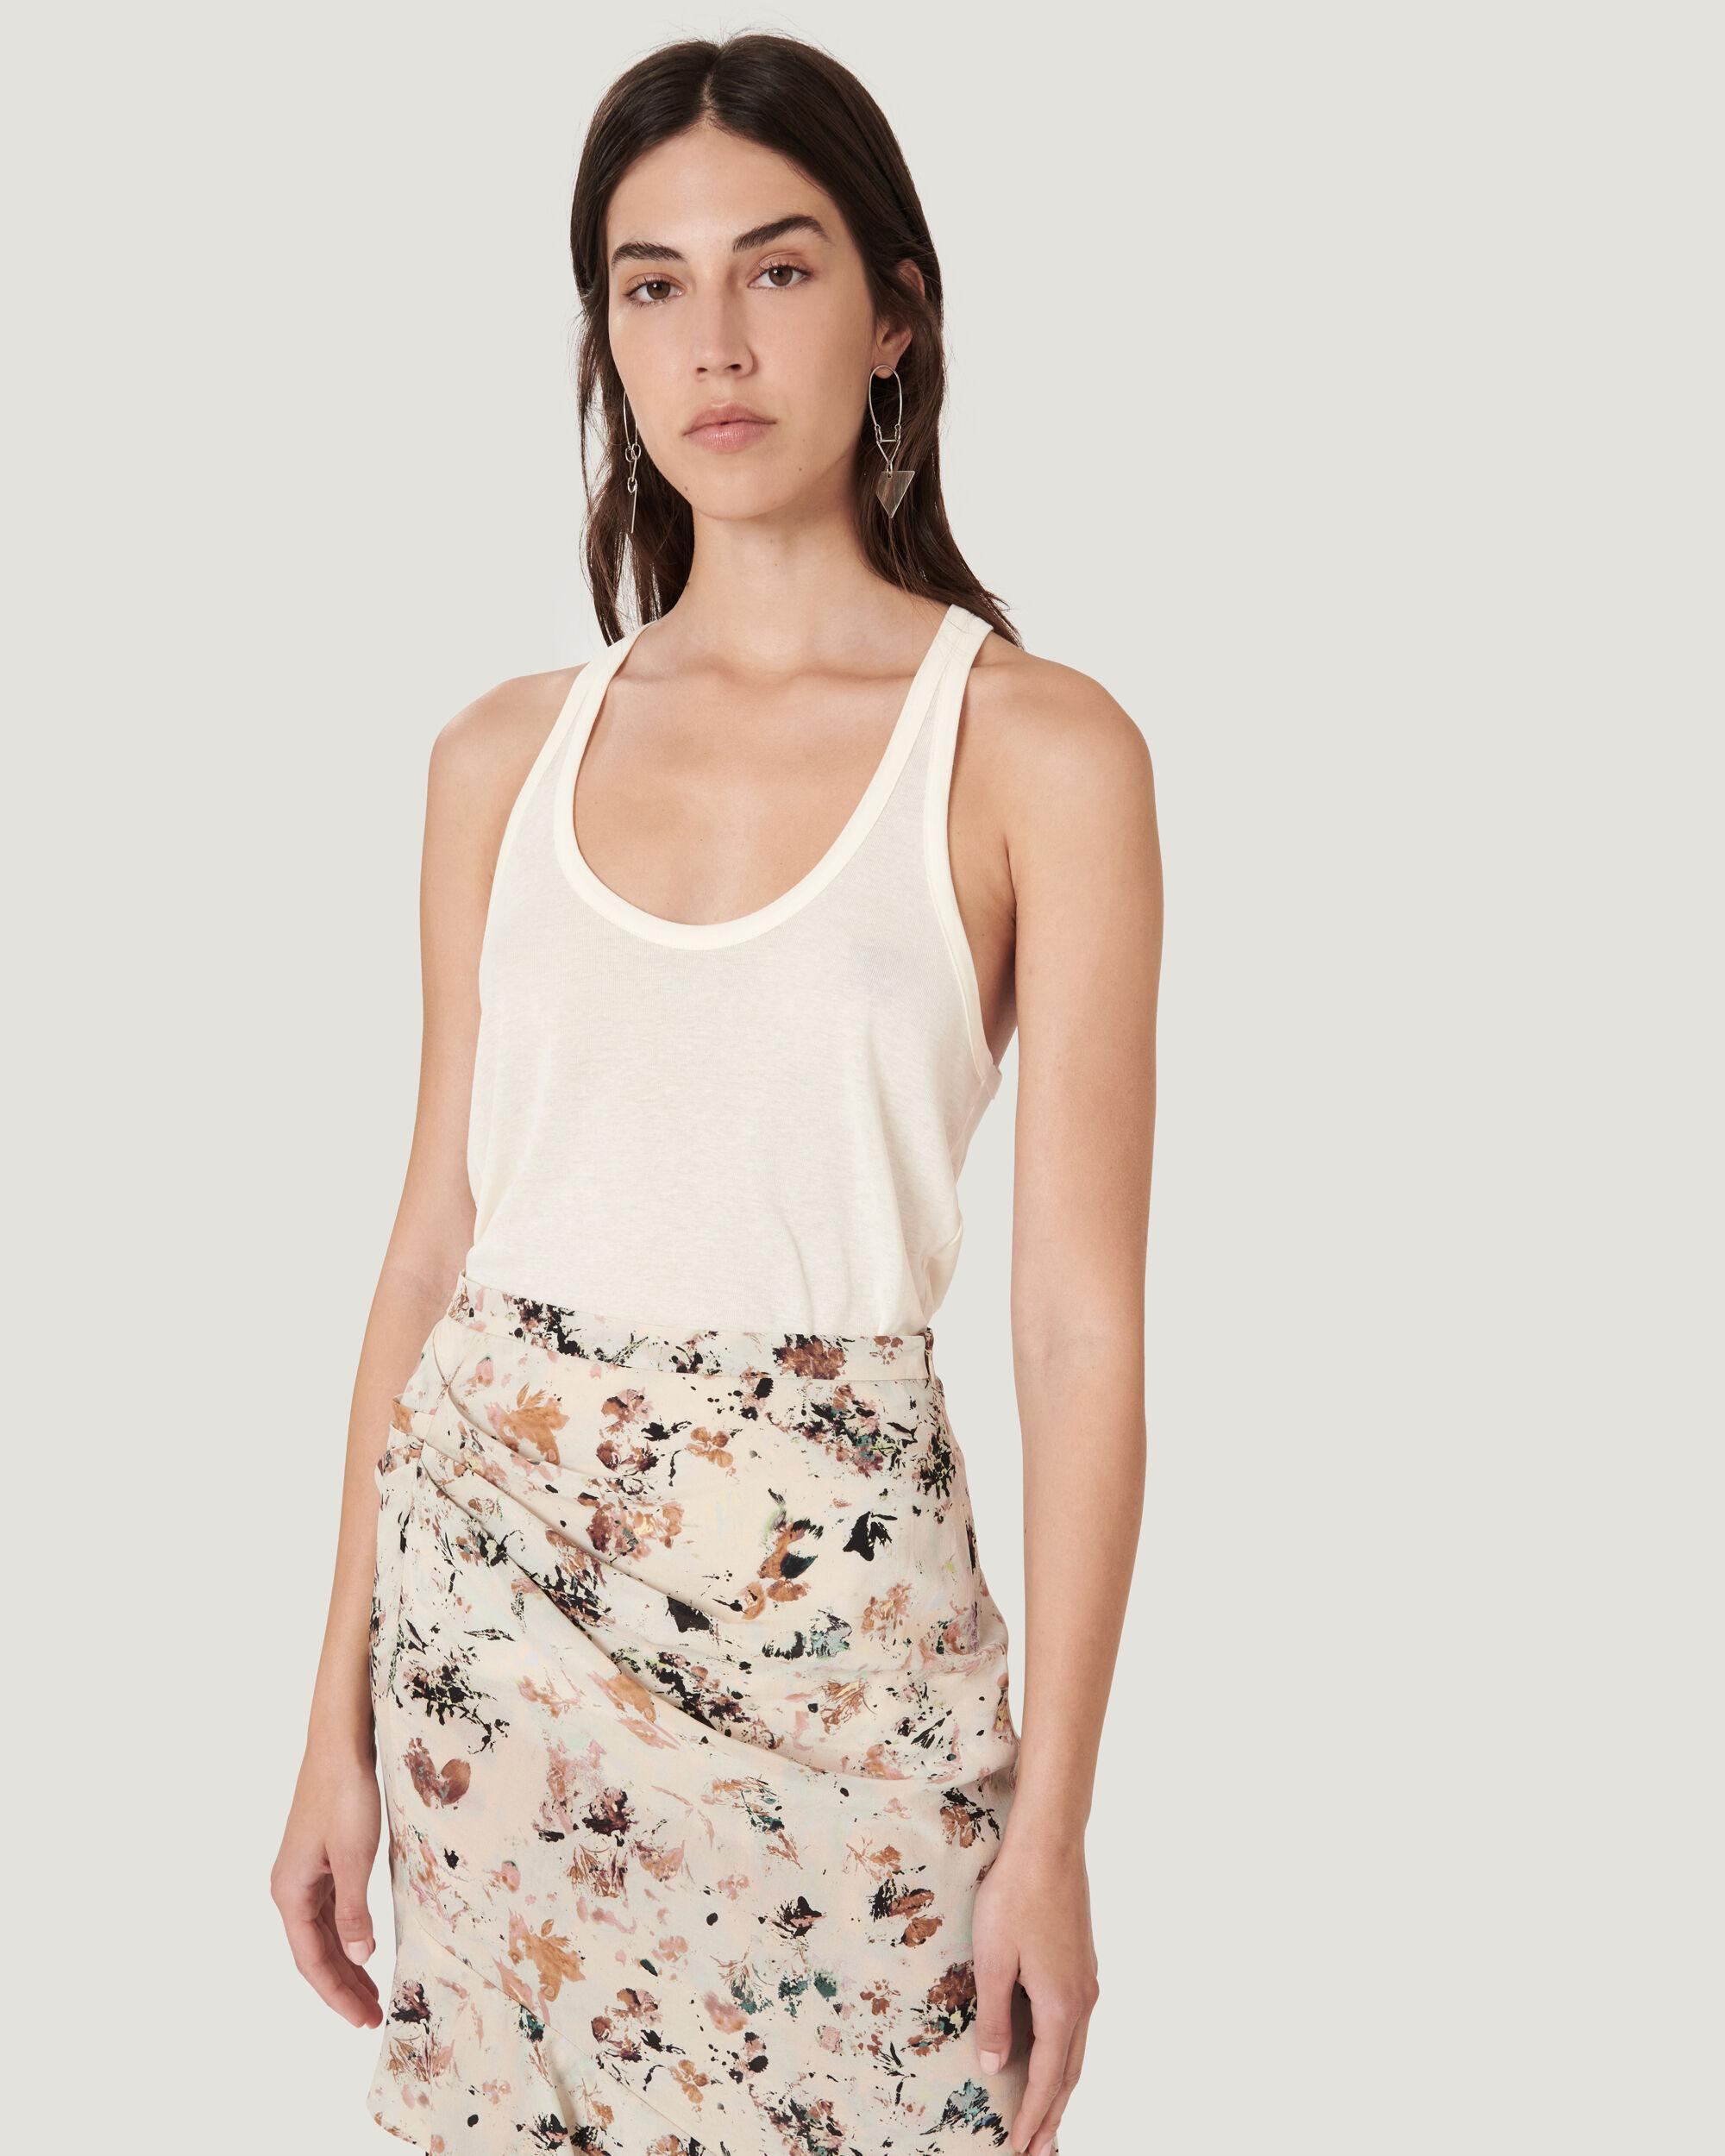 AMELY SCOOP NECK THIN STRAP TANK TOP